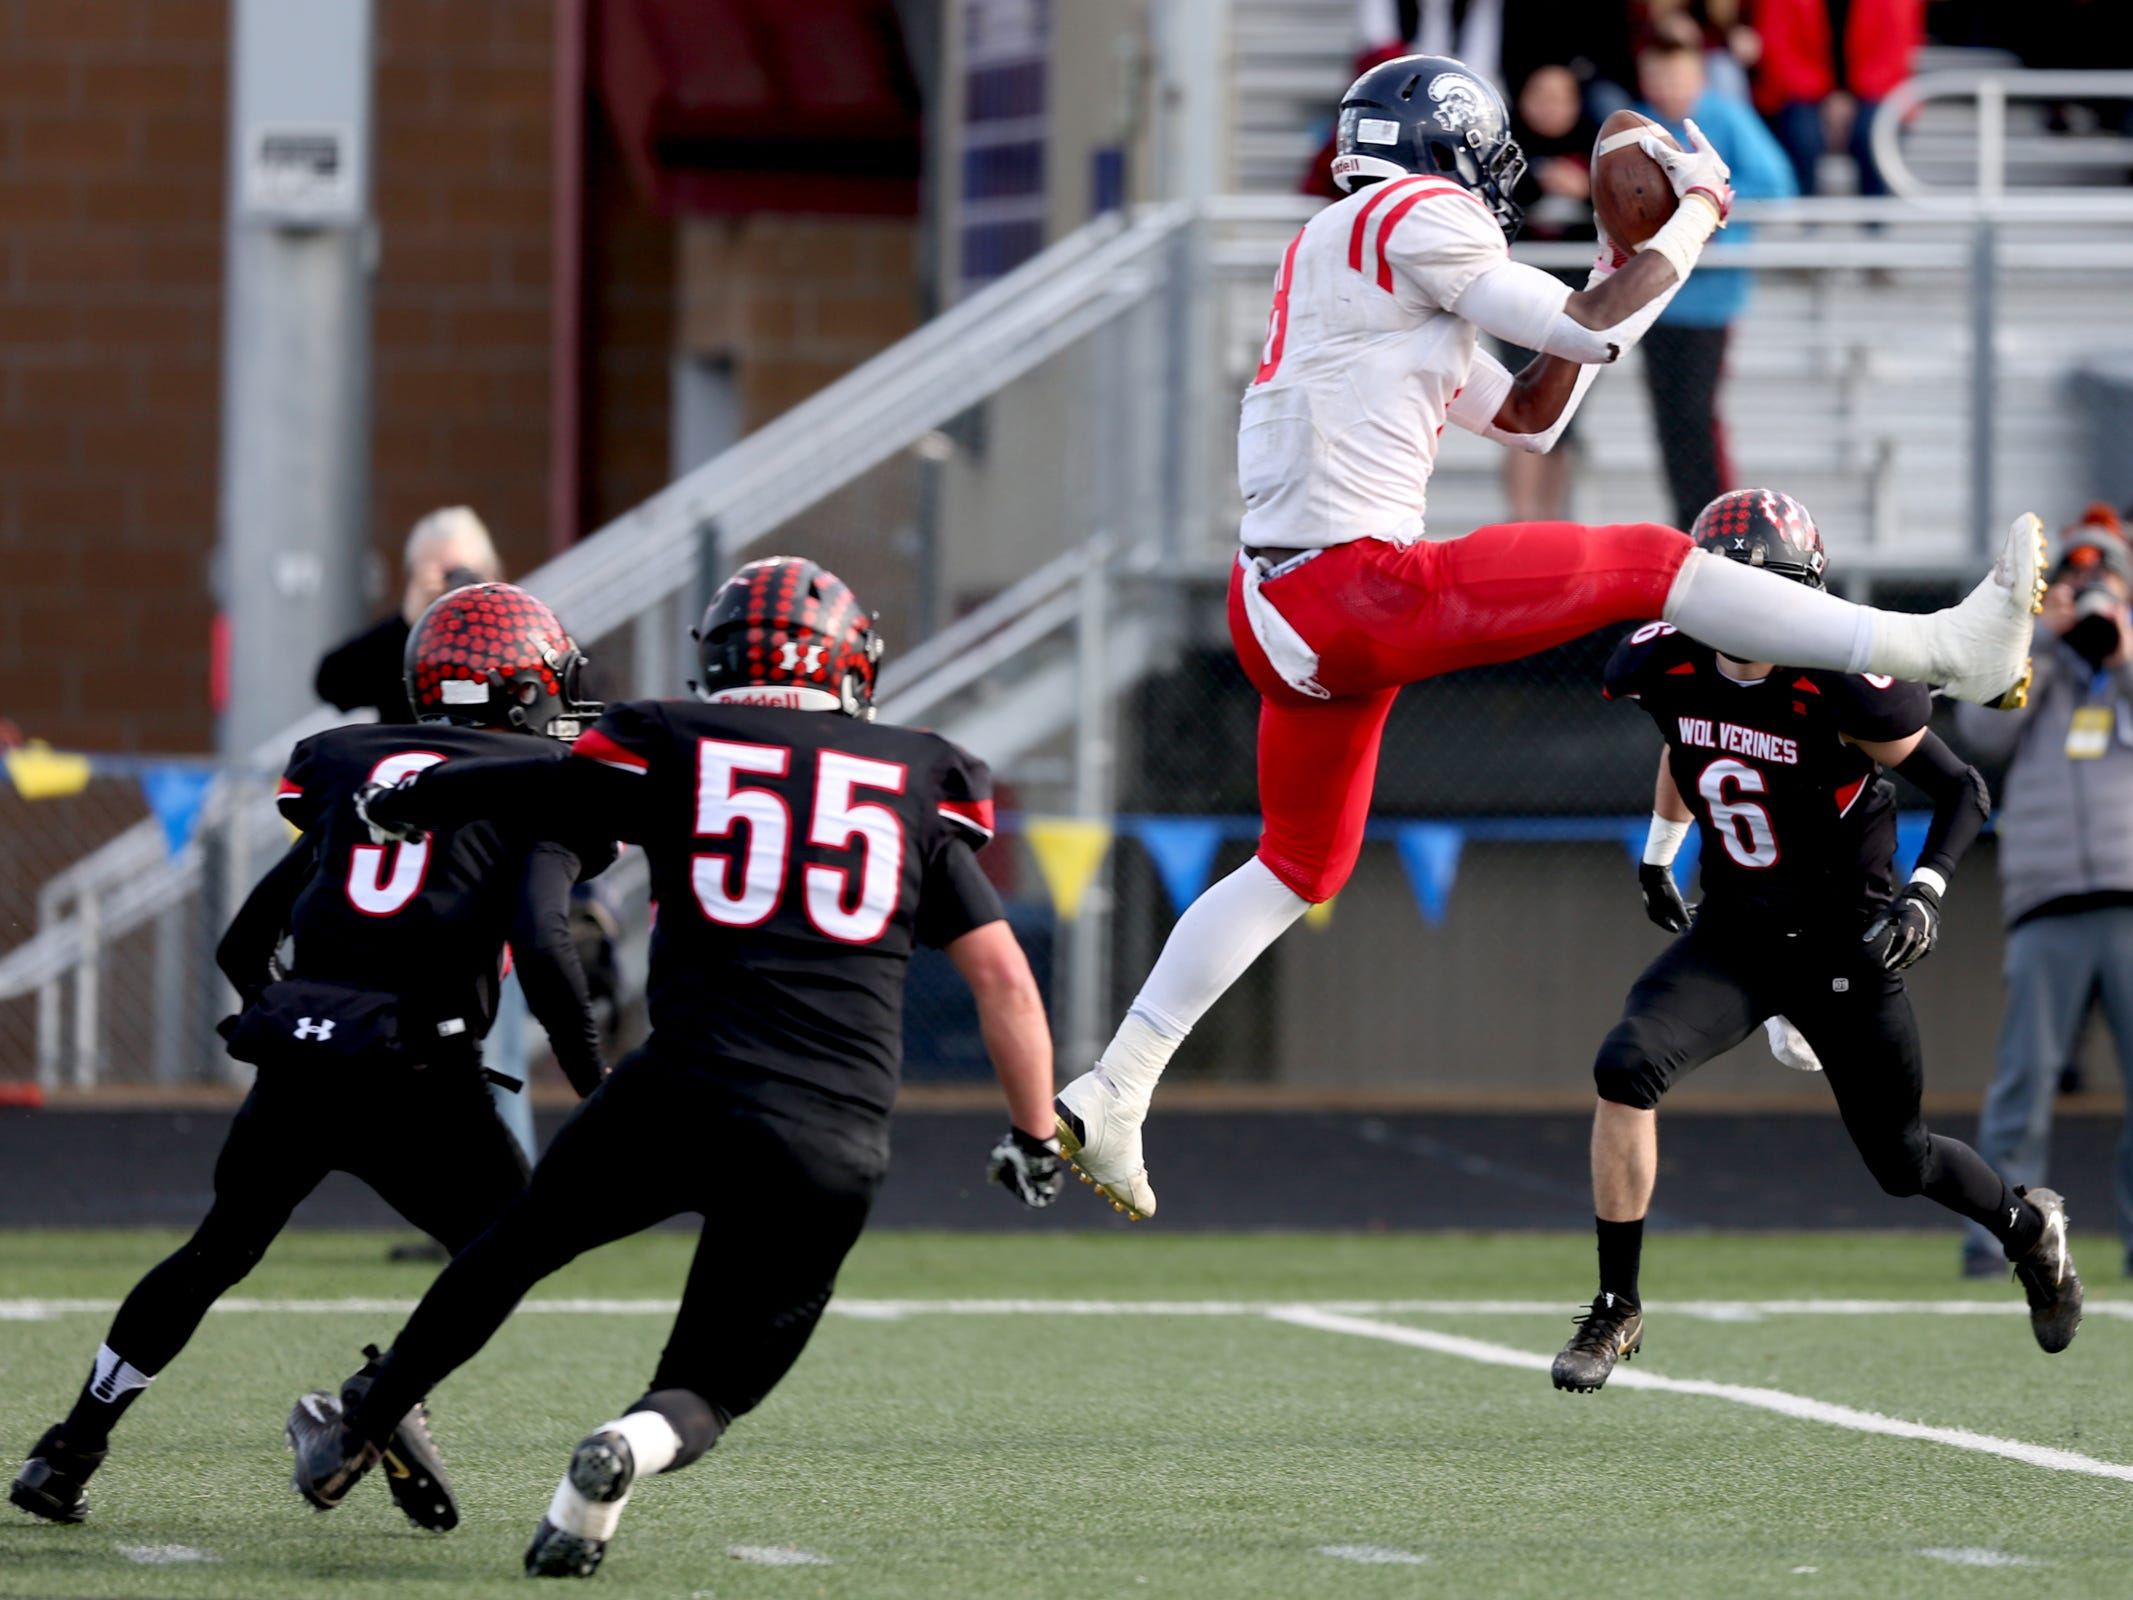 Kennedy's Emorej Lynk (8) leaps for a catch in the Kennedy vs. Santiam OSAA Class 2A state championship football game at Cottage Grove High School in Cottage Grove on Saturday, Nov. 24, 2018.